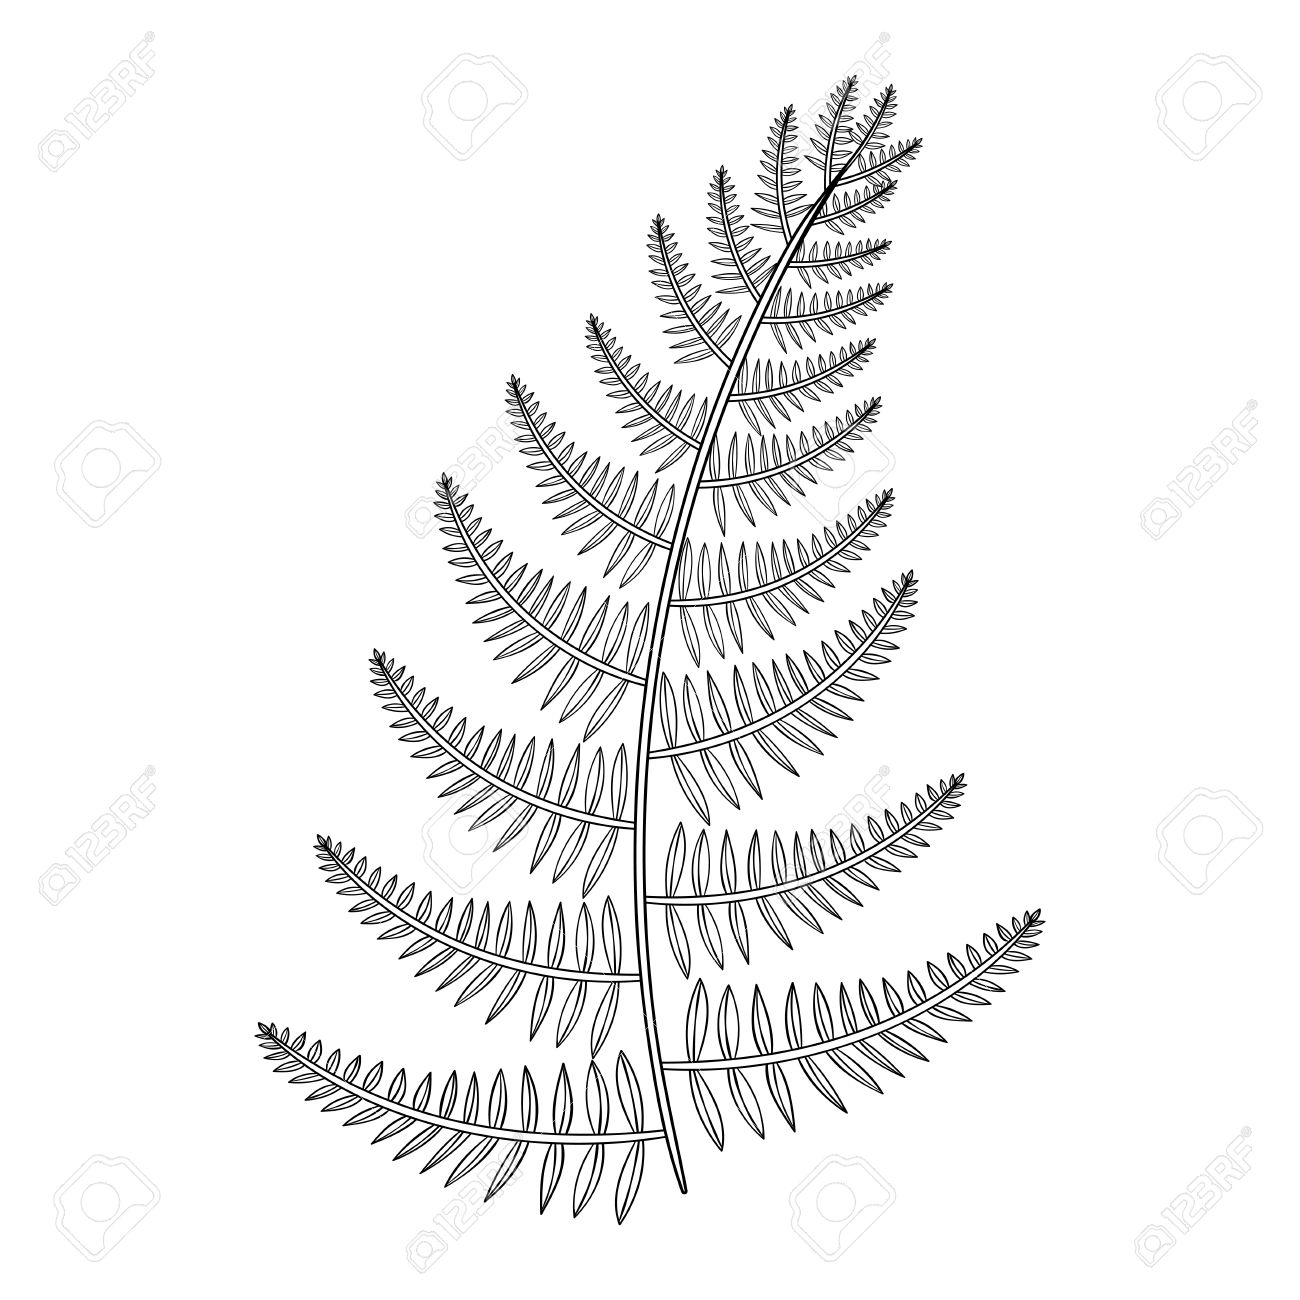 Zentangle Vector Male Fern For Tattoo In Boho Hipster Style